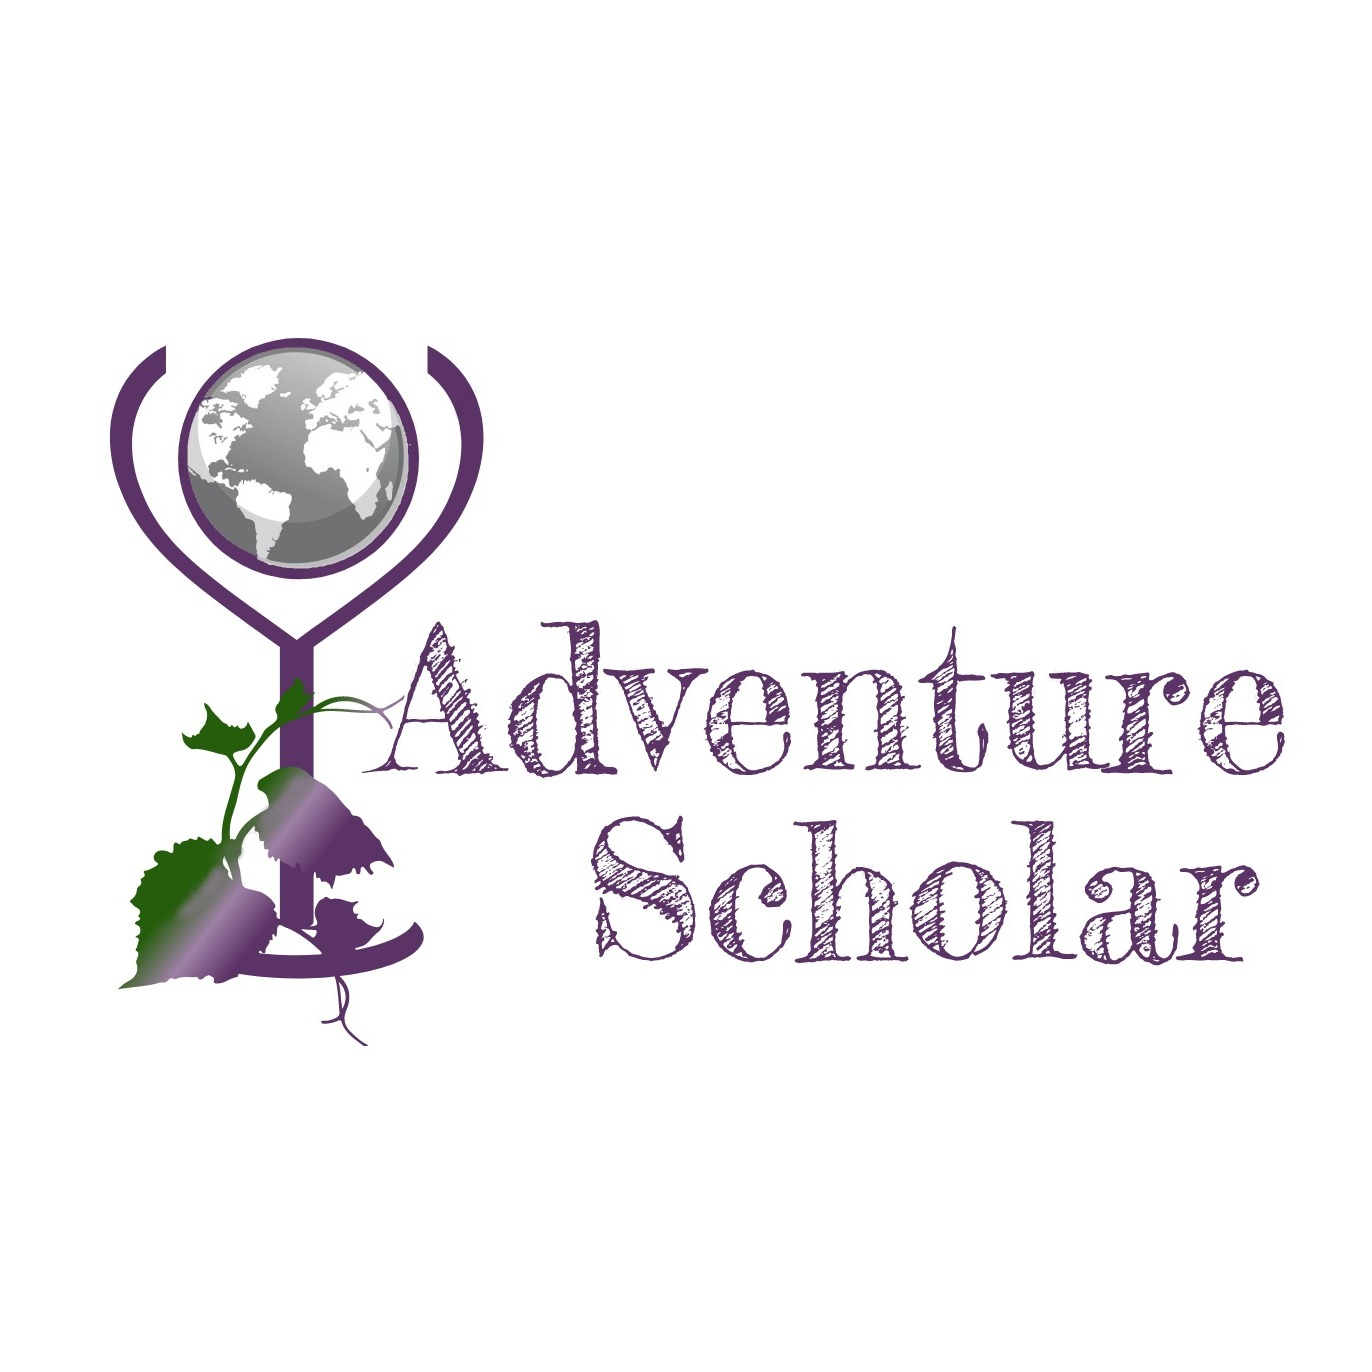 Introducing Adventure Scholar: What's in a Name?